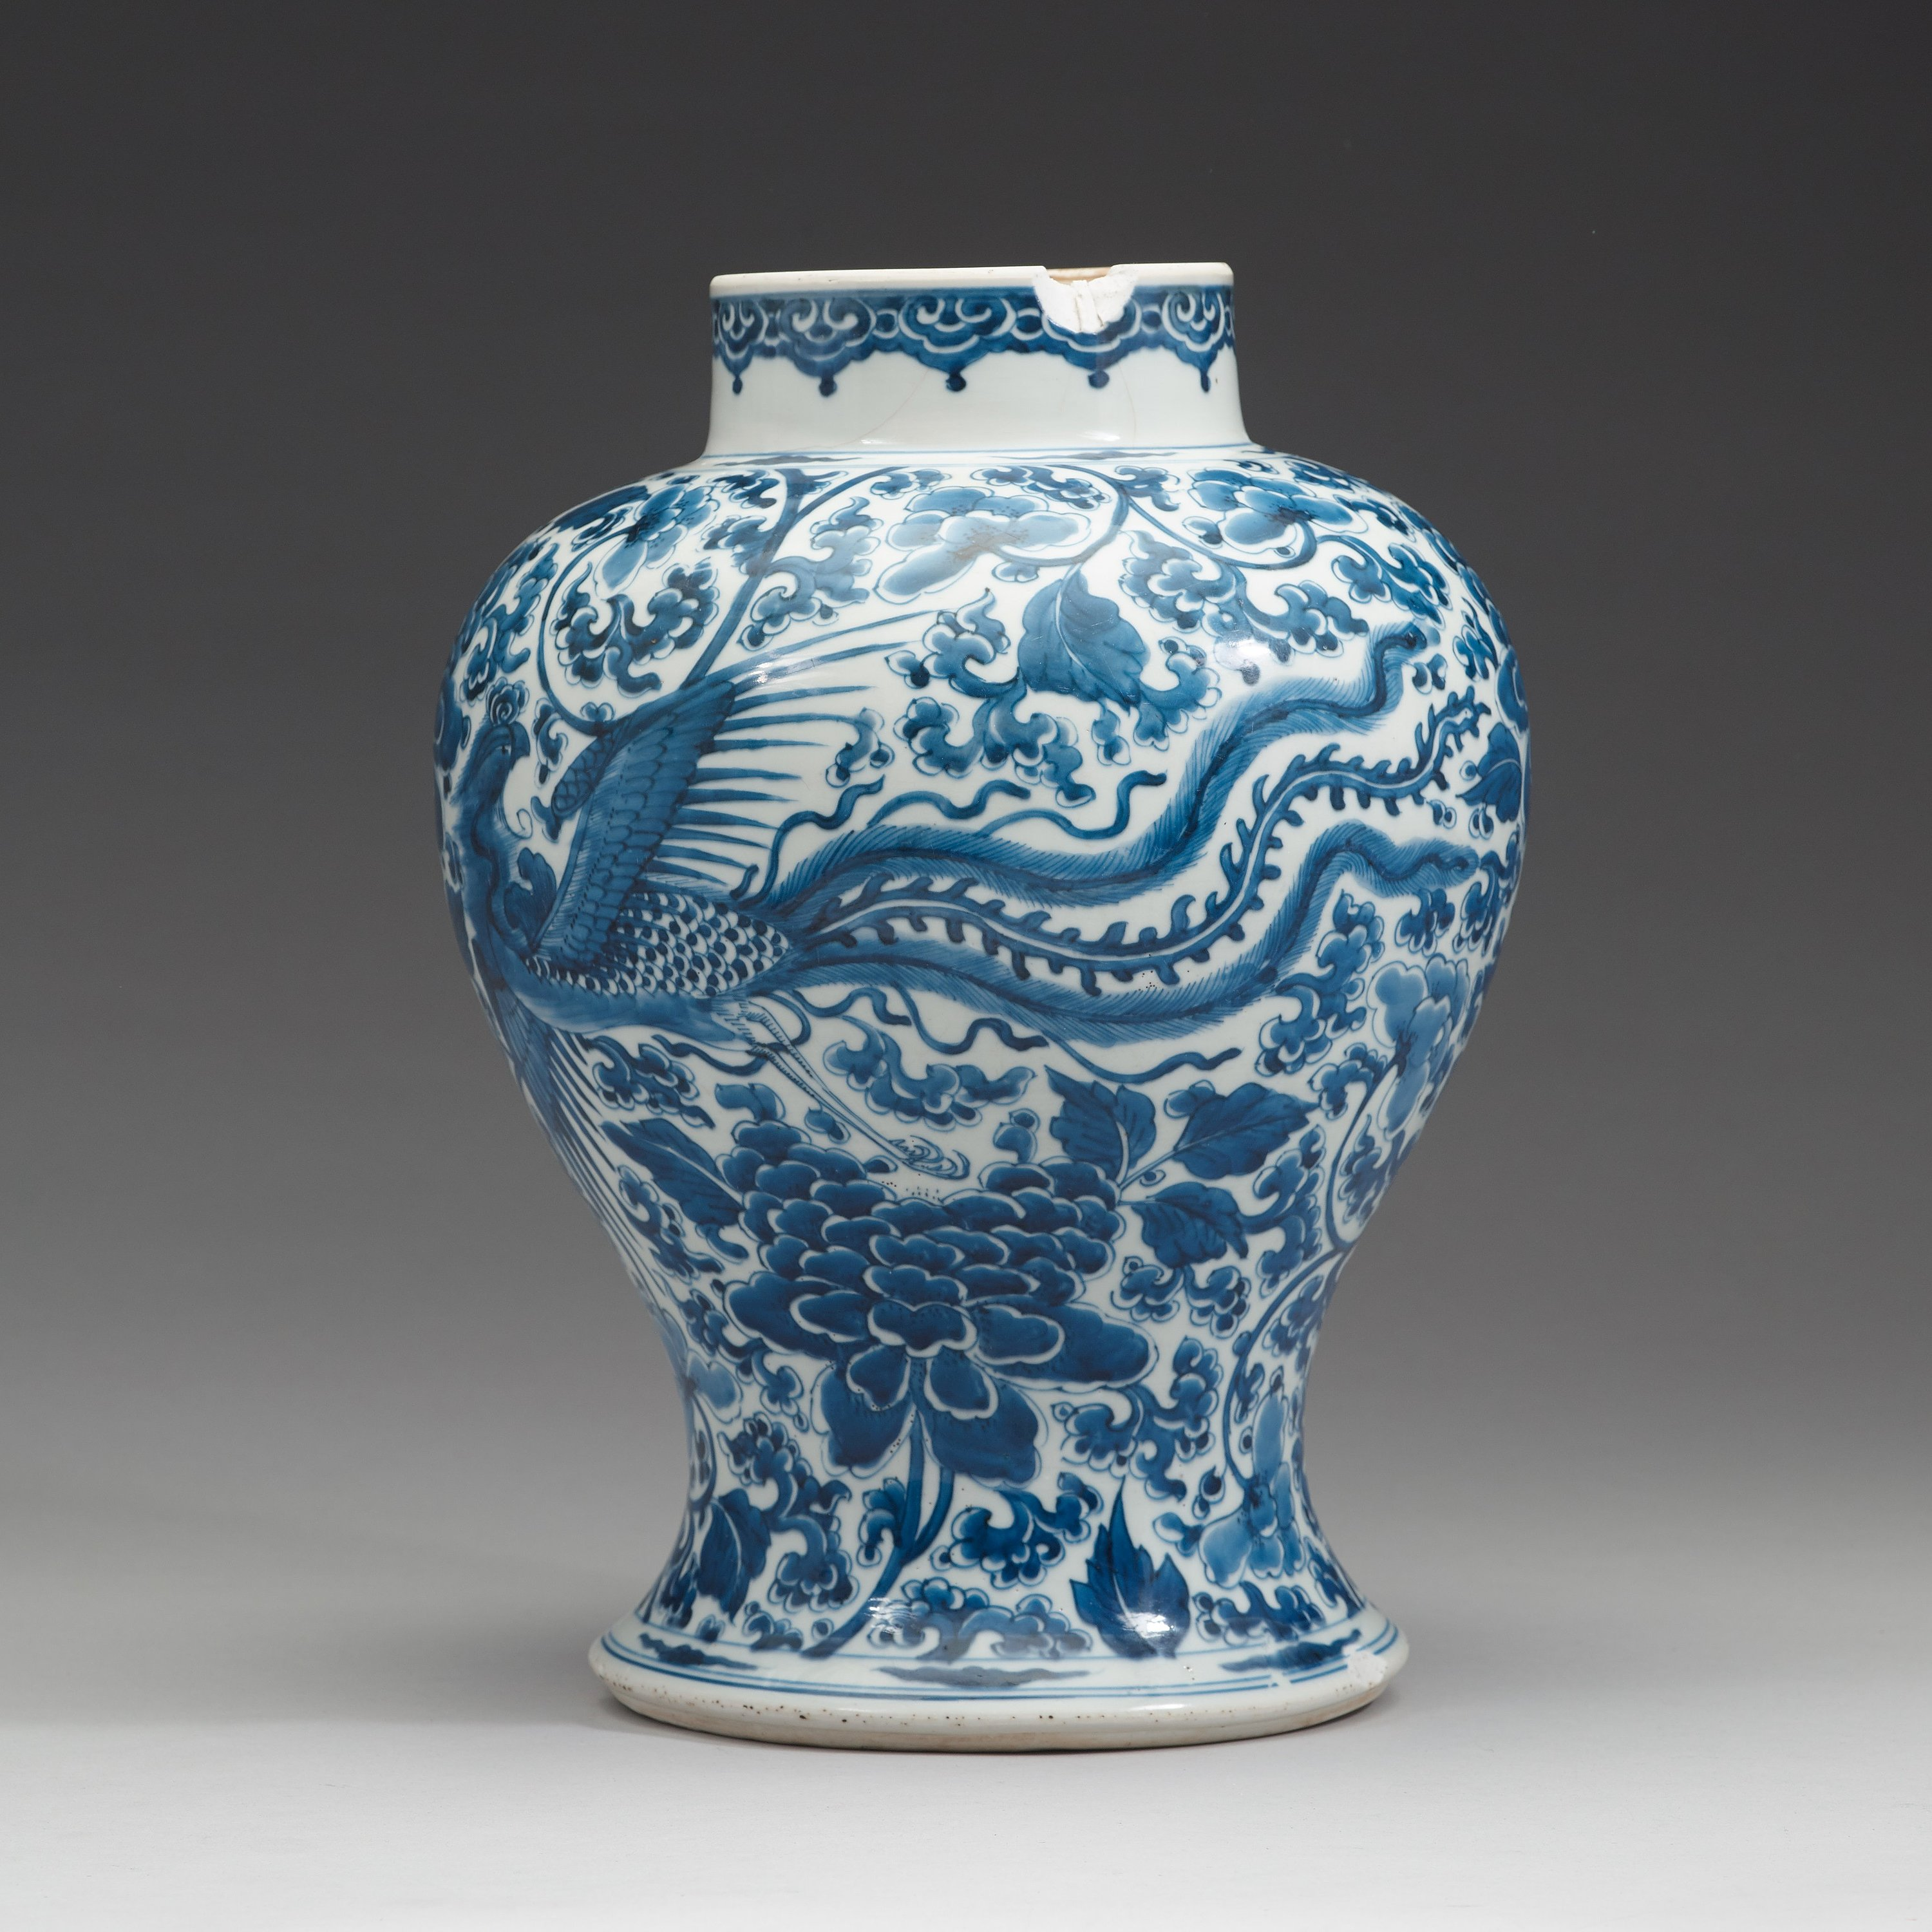 """24.5/""""H Hand-painted White and Blue Vase Birds Design-J77"""